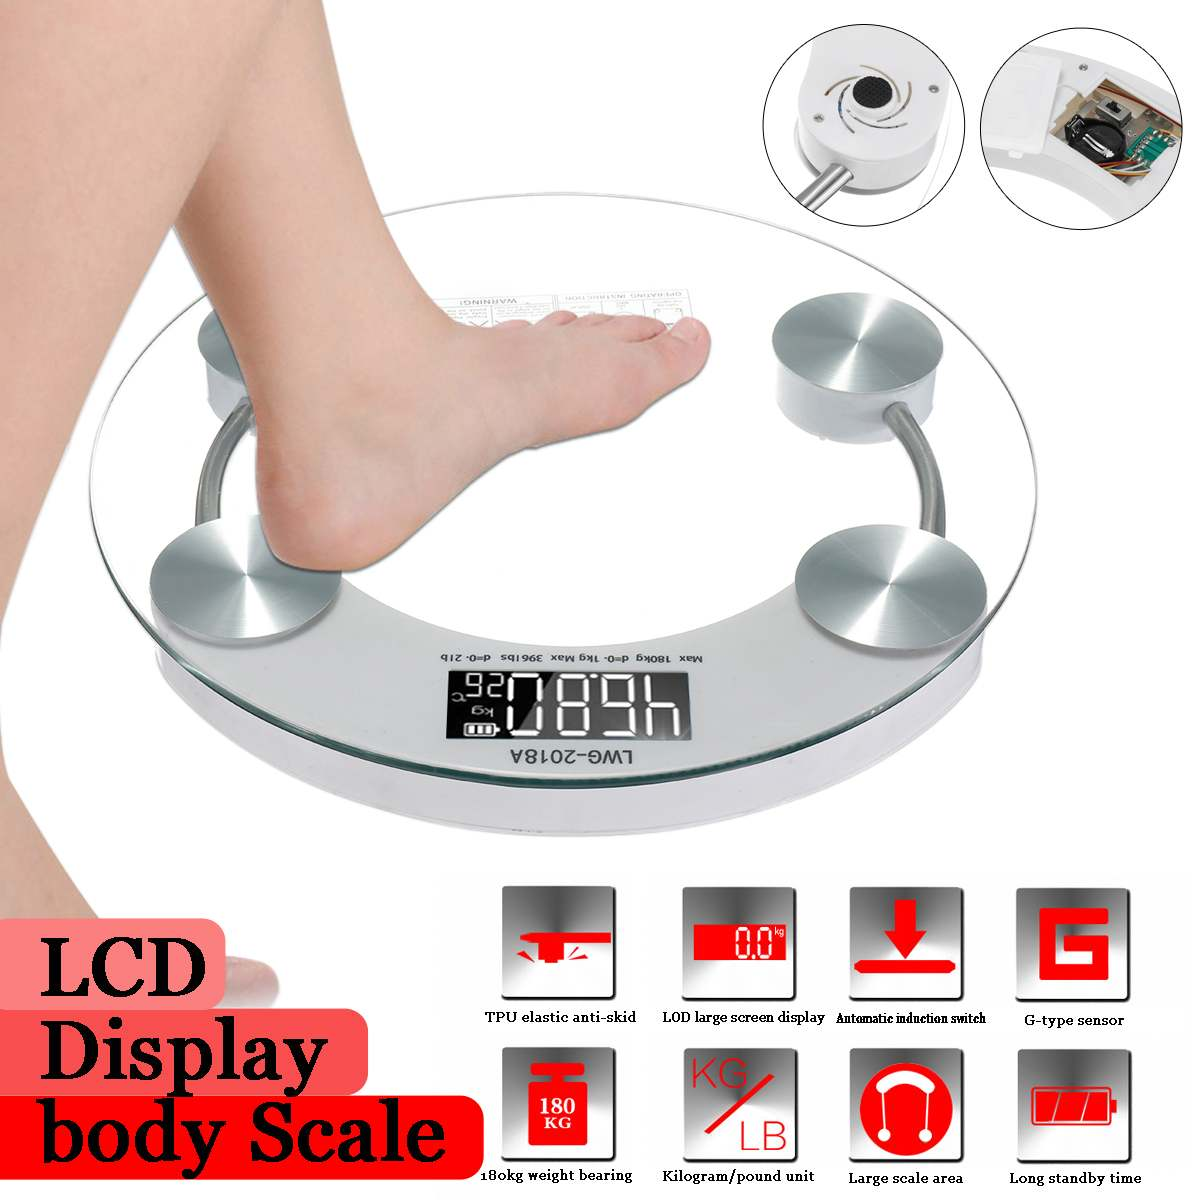 Digital-Weight-Scale Lcd-Display Body-Scales Glass Bathroom Electroni 180KG Gym Toughened